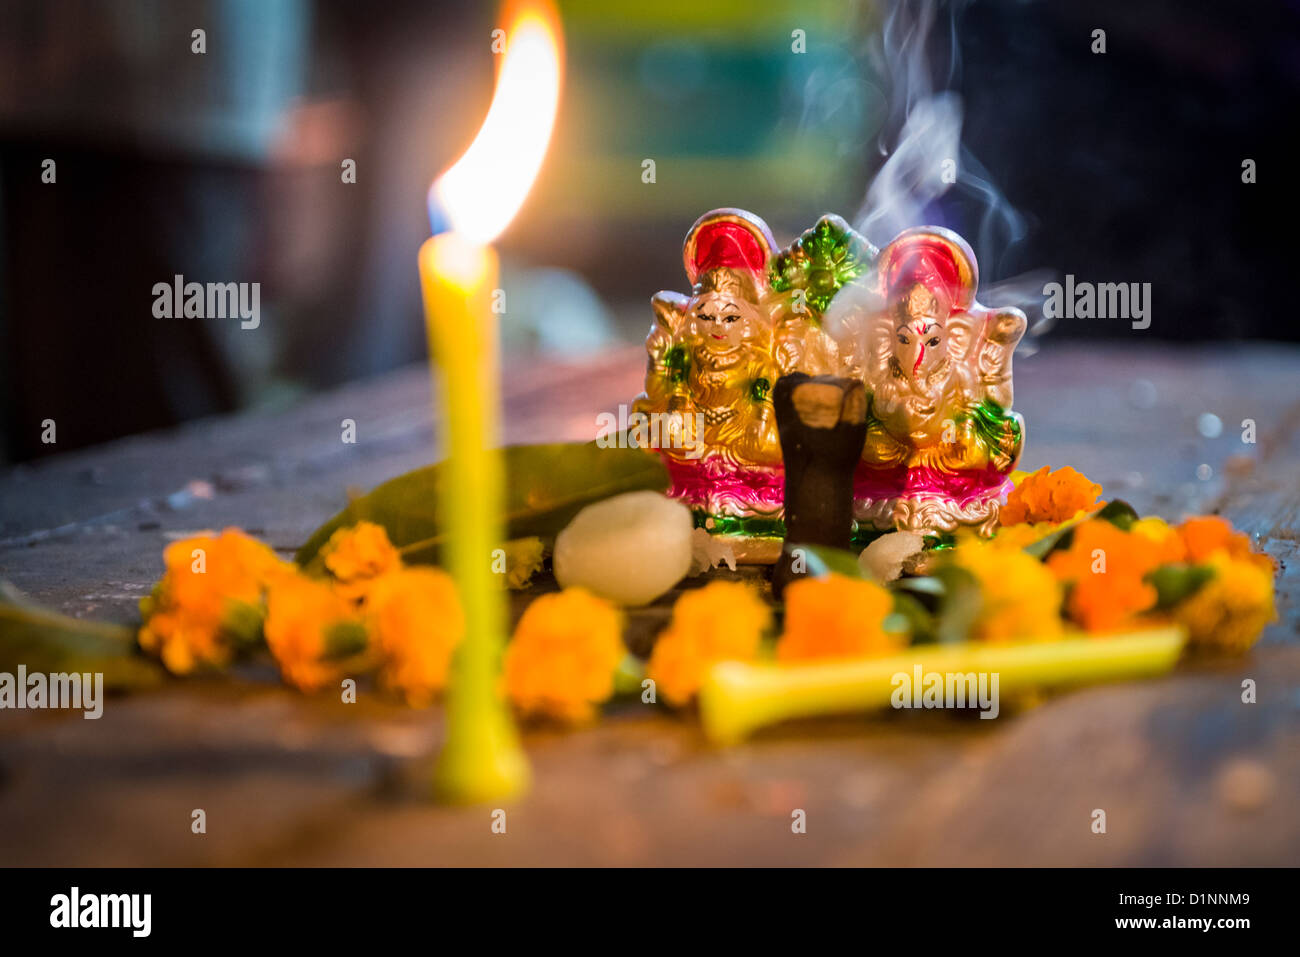 Indian deity statue on the table with Divali candle - Stock Image